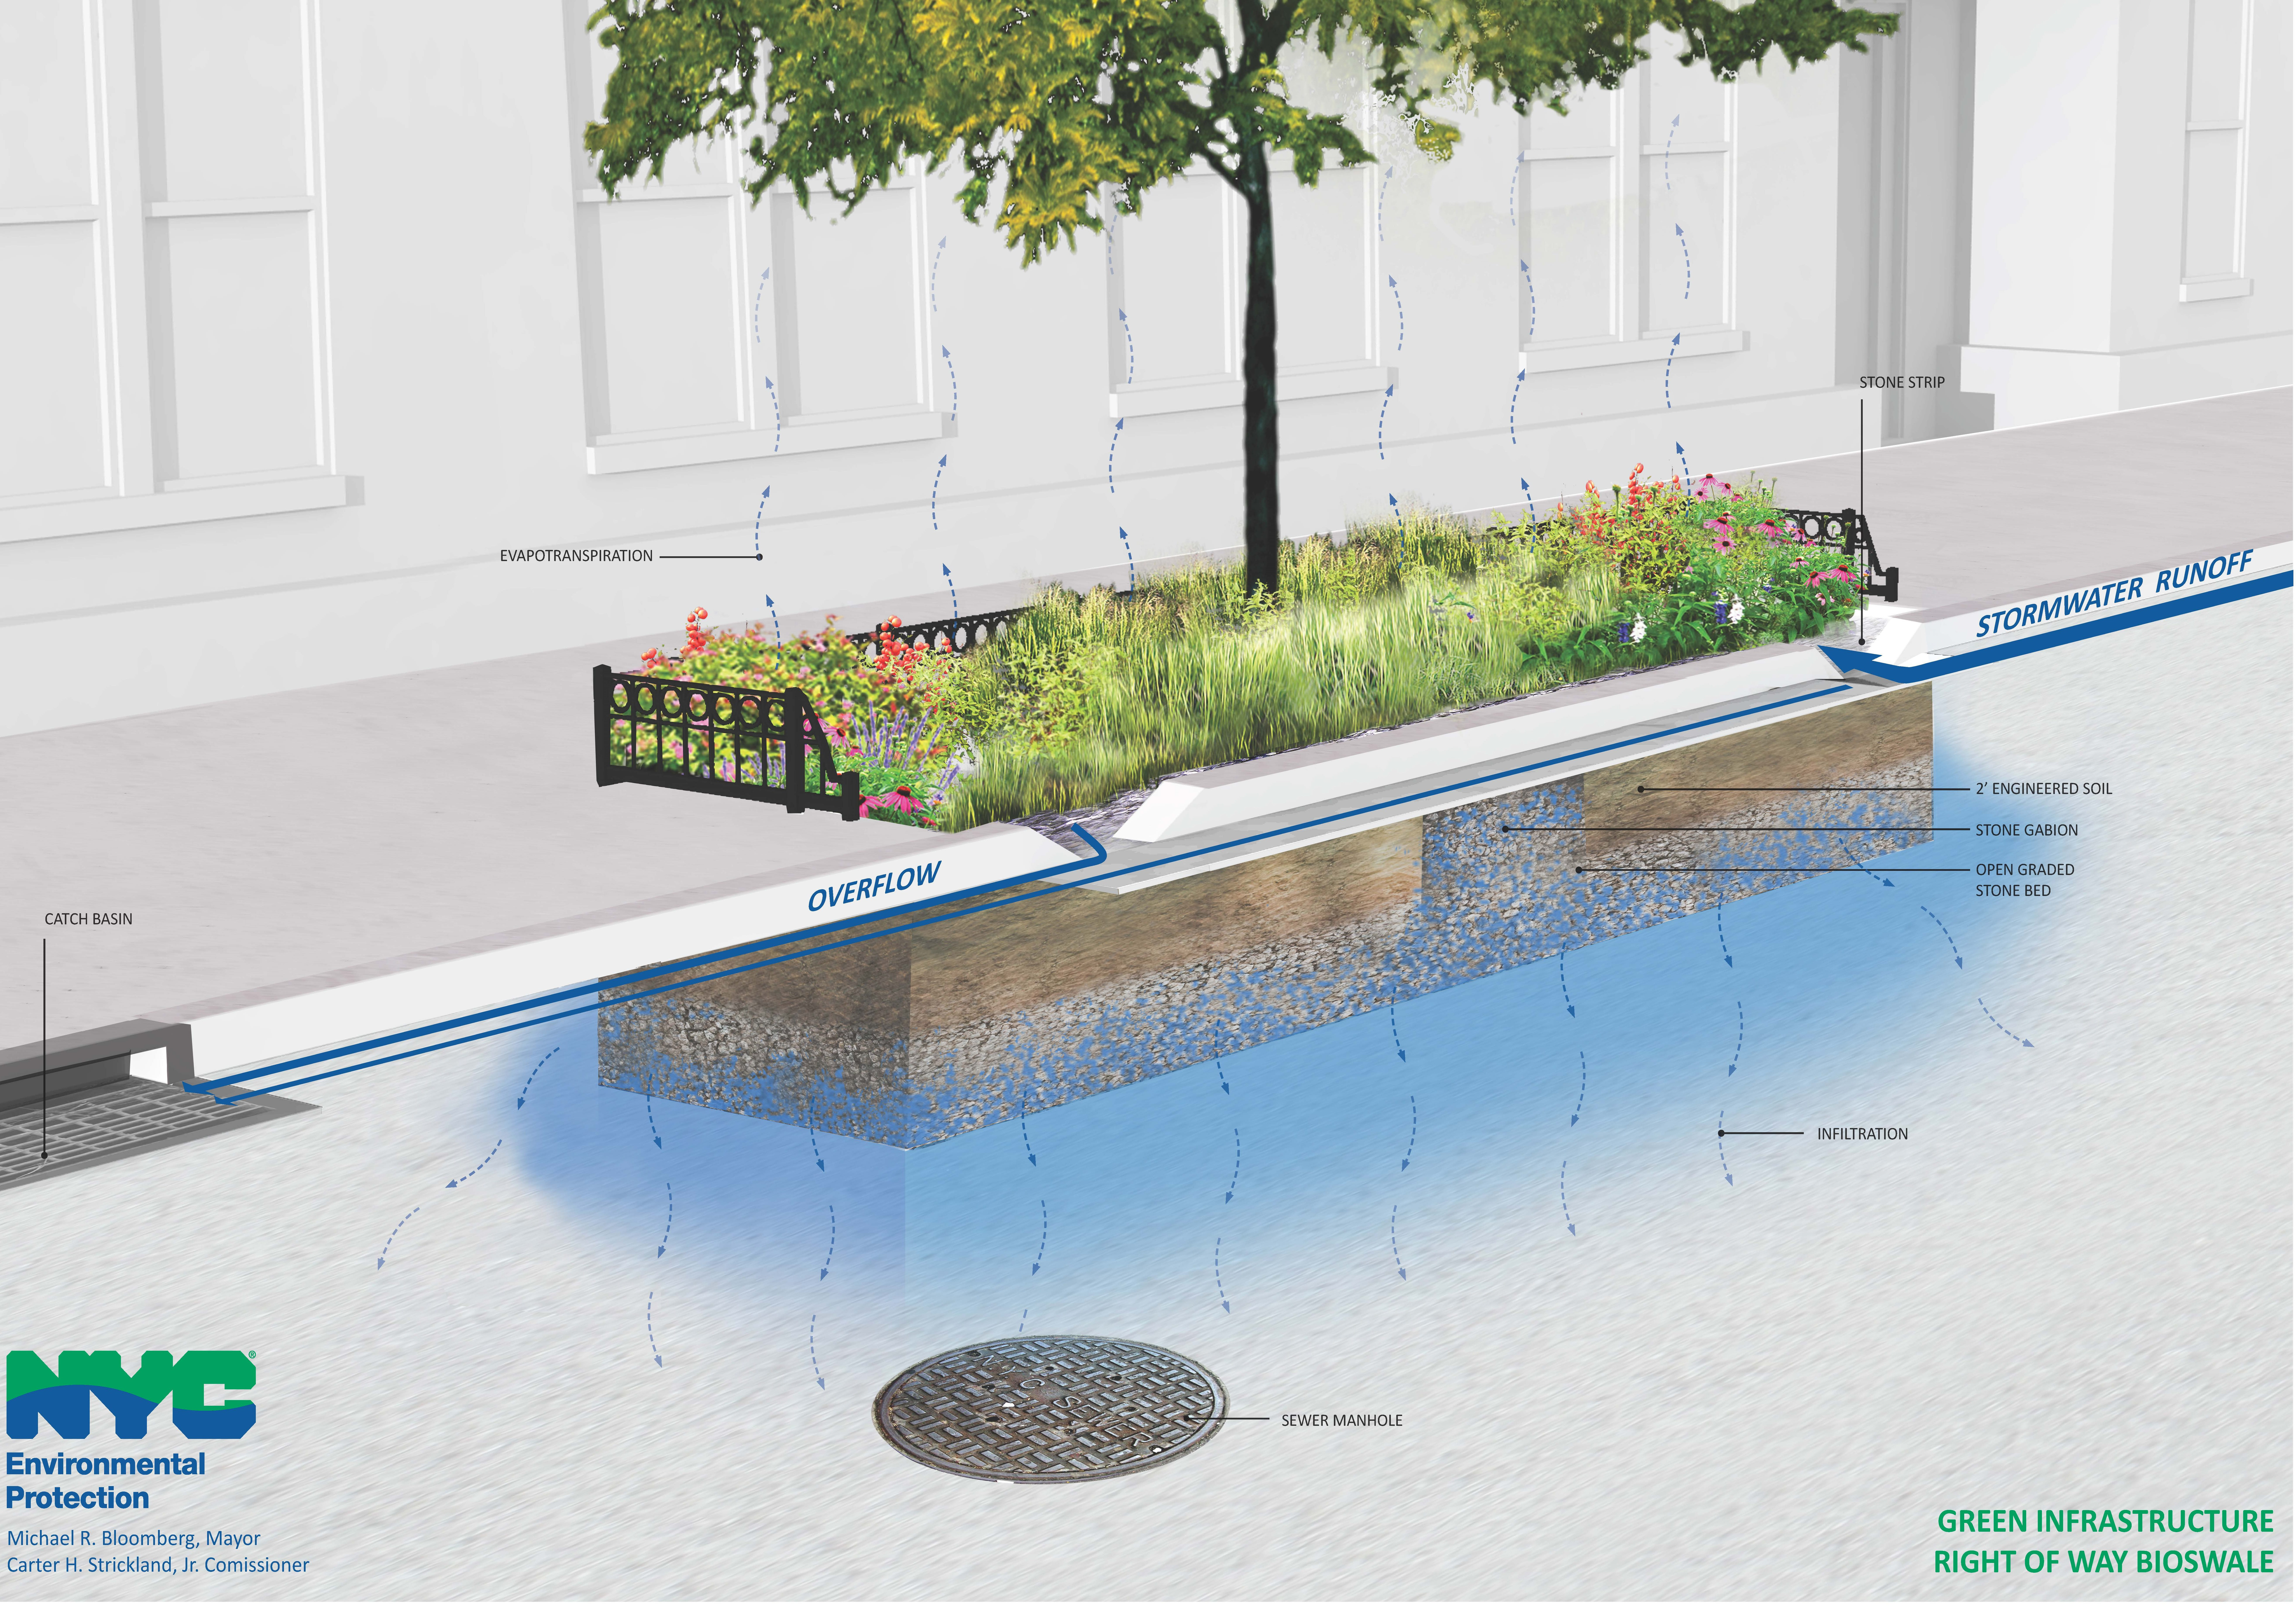 Bioswale, green infrastructure, department of environmental protection